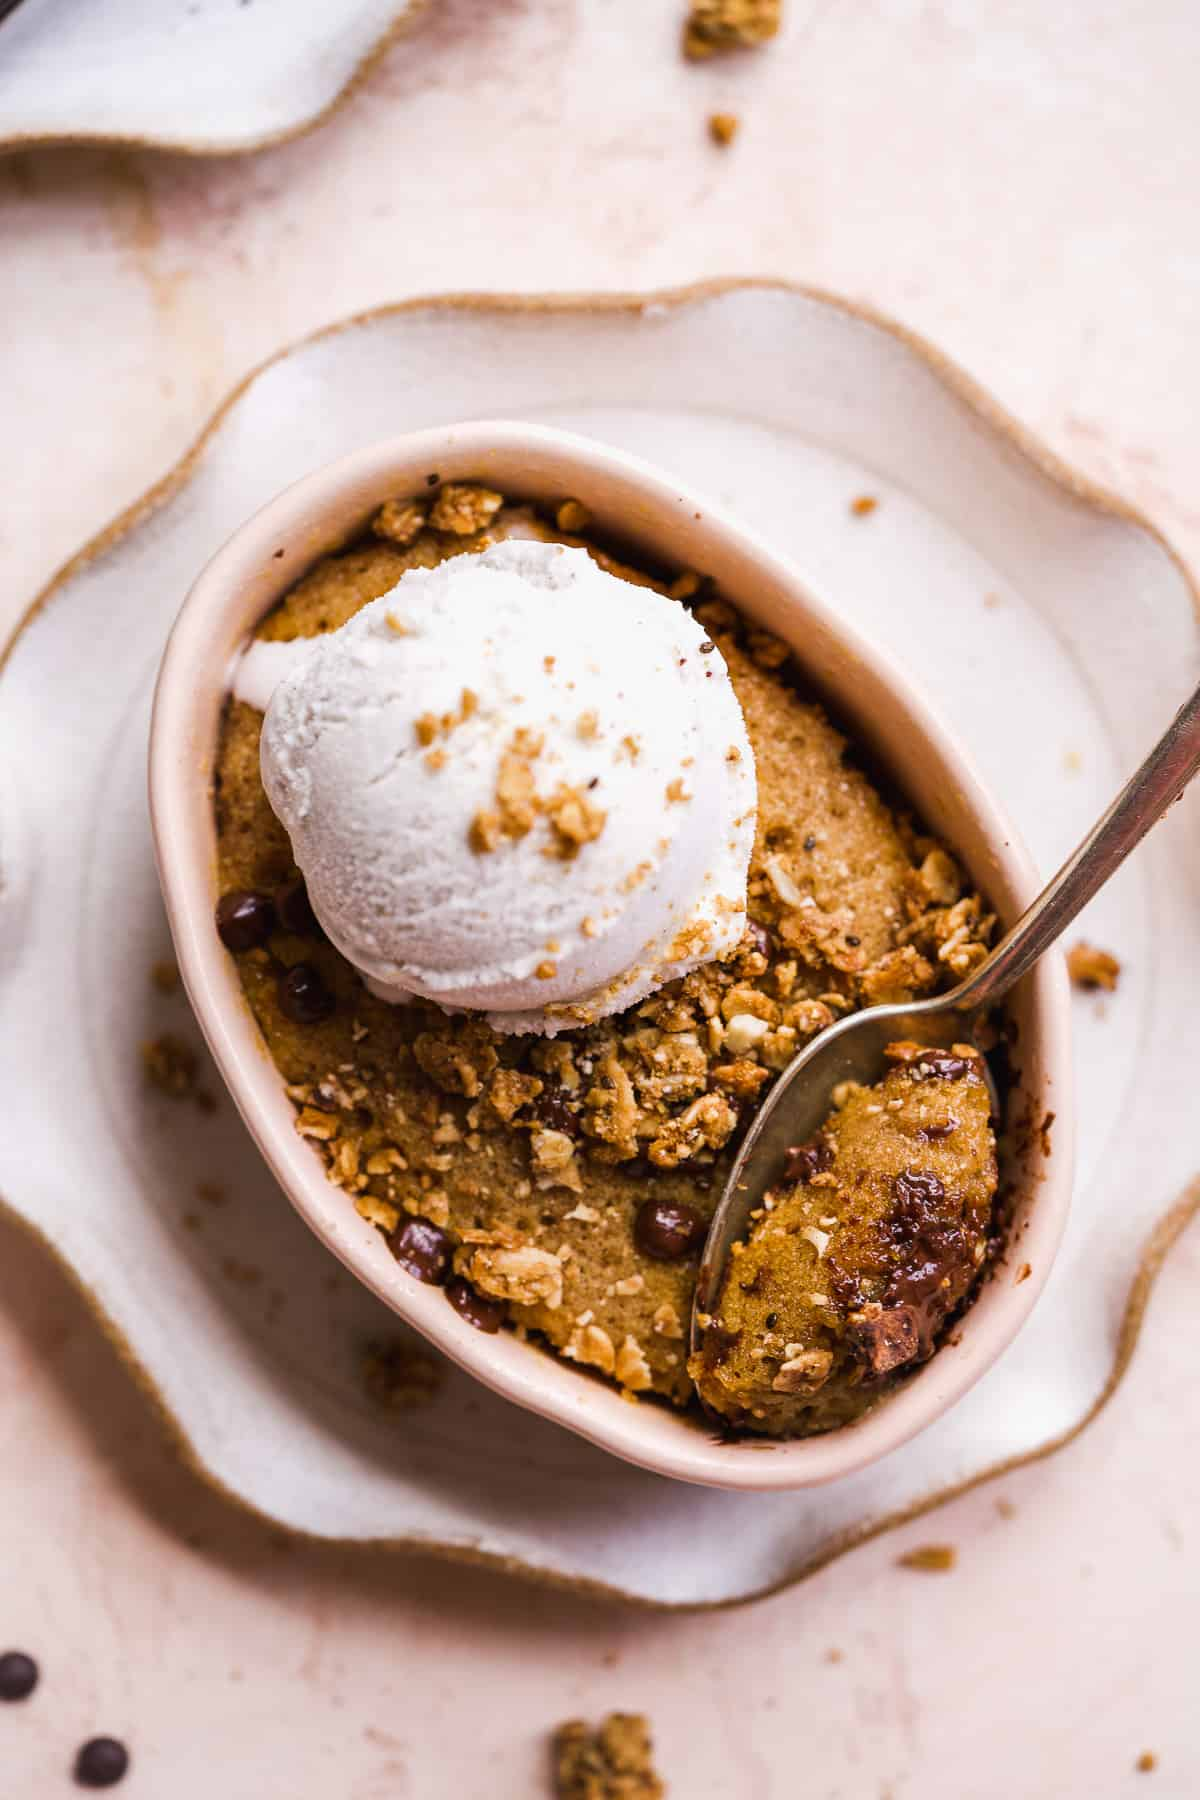 Oval dish with chocolate chip cookie baked inside and ice cream scoop on top.